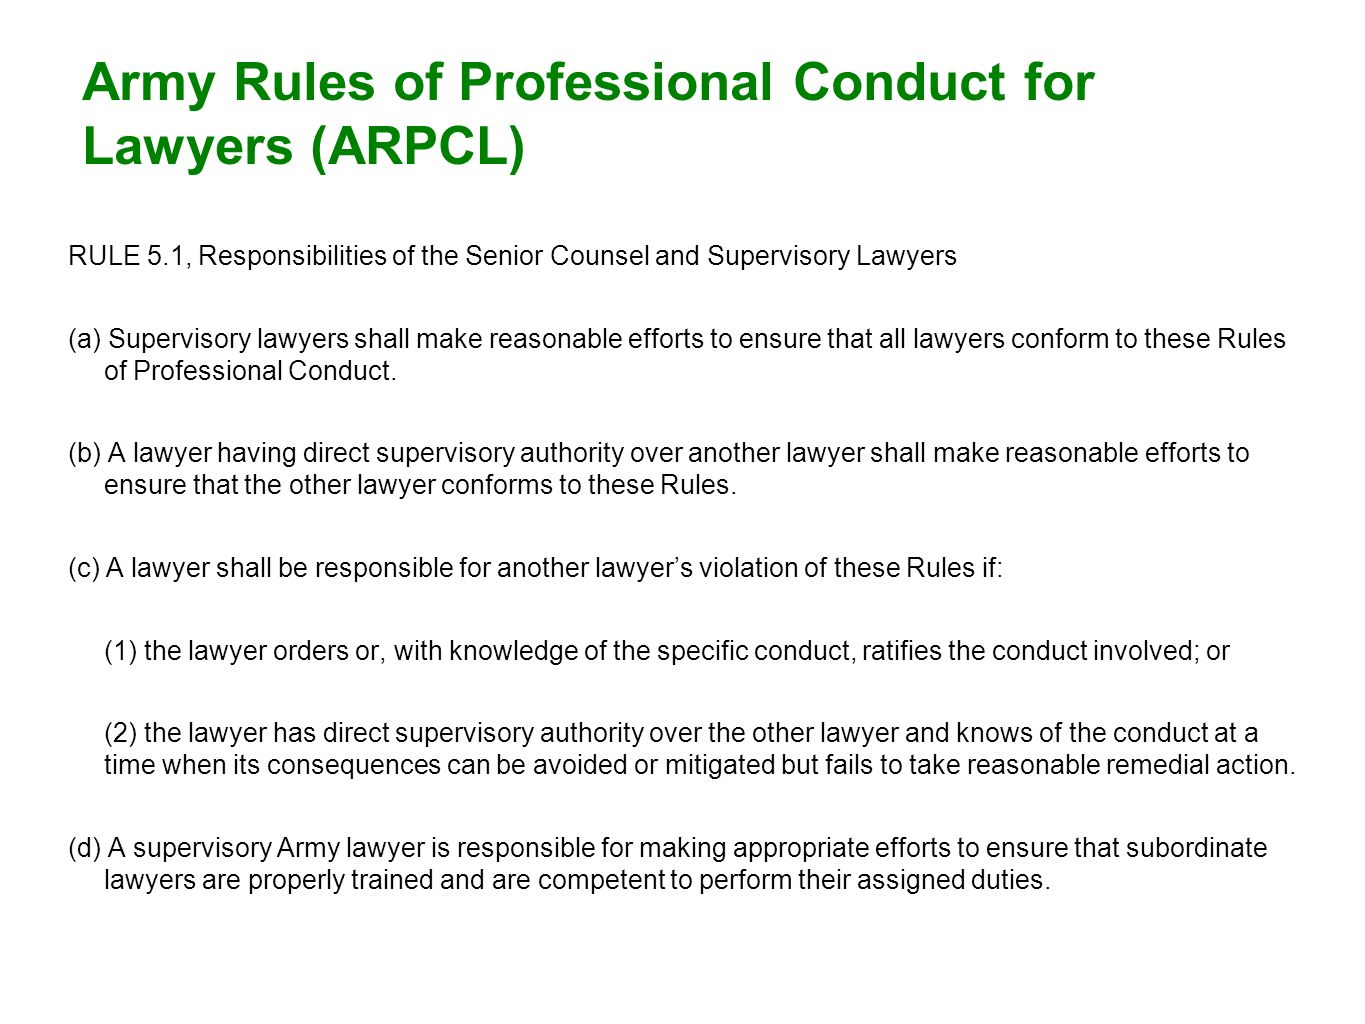 Army Rules of Professional Conduct for Lawyers (ARPCL)